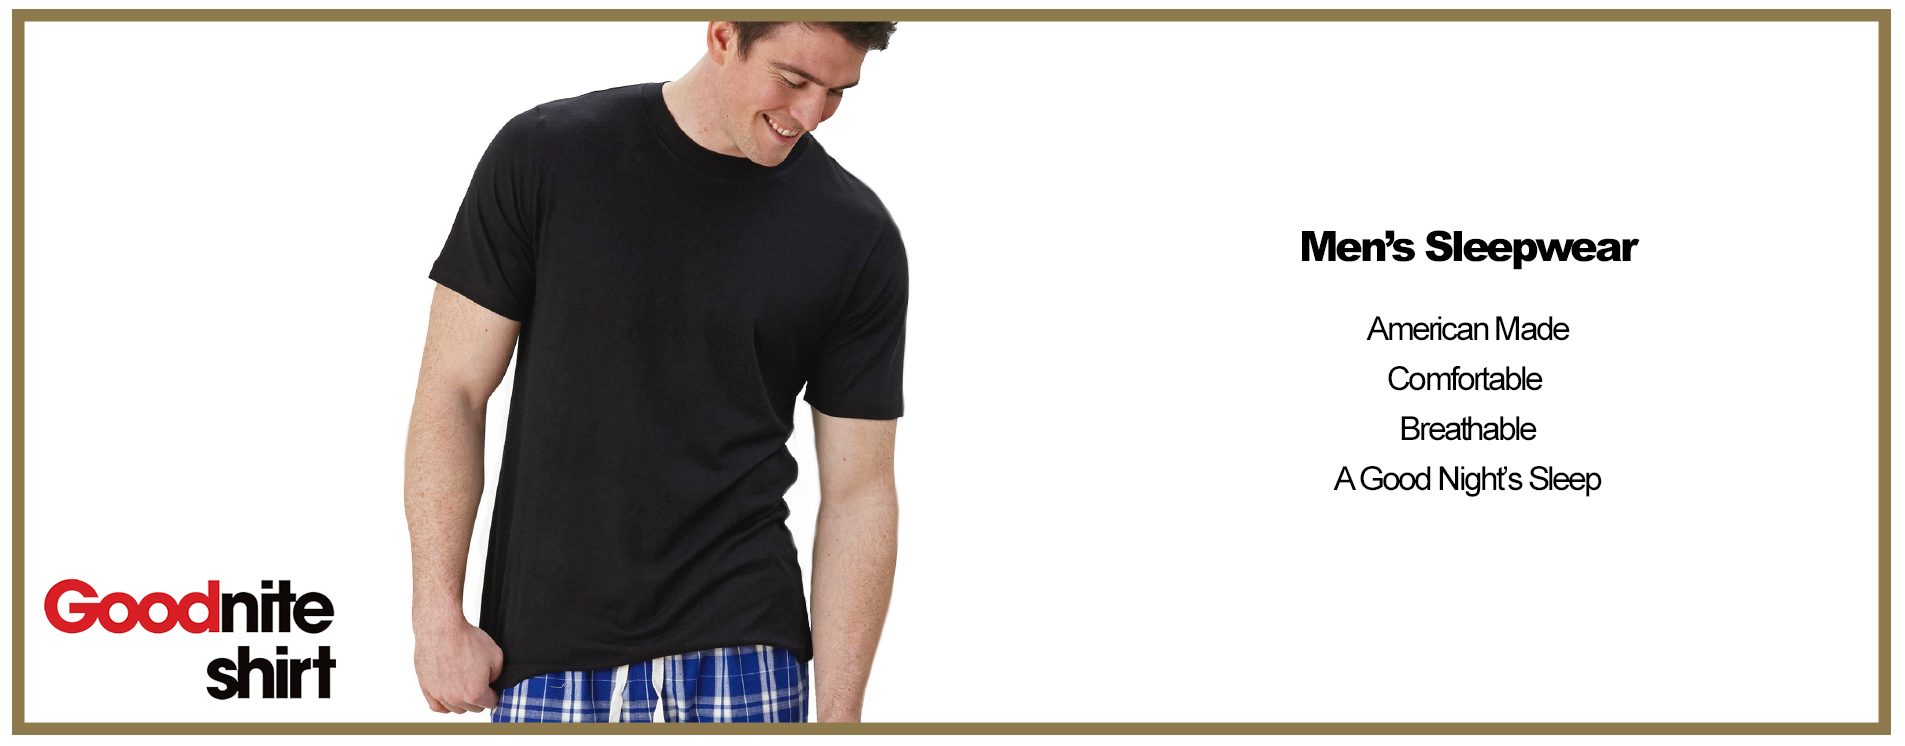 "<h1>American-Made Men's Sleepwear</h1> <p>Pajamas are an often ignored but important part of a man's wardrobe. When you get ready to go to sleep, you need to be as comfortable as possible in order to get the much-needed shut-eye you need to fuel you through another busy day. That means wearing sleep shirts and pants that are loose enough so you don't feel restricted but fitted enough that they don't fall down.</p> <p>Our American-made men's pajamas hit the sweet spot. They give you room to breathe, with fabric that's soft to the touch and feels like a dream when you lay down to sleep. You will enjoy a restful night when you slip into our sleep pants and shirts before bedtime.</p> <p>Like all our clothing, our men's pajamas are made in the USA. We believe in the <a href=""https://www.goodwear.com/pages/about-us"">importance of American manufacturing</a>. It's an industry that has formed the backbone of our economic system for years, and we continue to support it by <a href=""https://www.goodwear.com/pages/american-made-clothing"">making all our clothes in America</a>. That underscores our commitment to American workers, which benefits this wonderful nation.</p> <h2>The Advantages of Purchasing Goodwear Men's Sleepwear Made in the USA</h2> <p>You can reap many gains from buying American-made clothing such as men's sleep pants and shirts. Here are just a few reasons many of our customers choose to buy our products:</p> <ul> <li><strong>High quality:</strong> We use only the best materials when manufacturing our clothes. The upscale items you see on Goodwear include only 100 percent USA-grown and produced cotton.</li> <li><strong>Longevity:</strong> Clothing made with the best material will last much longer than other items. Our men's sleep pants and shirts made in the USA are worth the price because they will outlast other, lower-quality clothing.</li> <li><strong>Comfort:</strong> It doesn't matter where your clothing is made if it's uncomfortable. We put the highest priority on producing clothes you will want to wear, because they feel snug and cozy at bedtime.</li> <li><strong>Standing up for workers:</strong> When you buy from an American-made company, you reject the questionable practices of companies manufacturing abroad, such as sweatshops and child labor.</li> </ul> <h3>Browse Our Selection of Men's Made-in-the-USA Sleepwear</h3> <p>Whatever the season, whatever the reason you need new clothing, Goodwear can help you find great items at affordable prices. We offer free shipping on all domestic purchases and returns. We also post frequent deals on our site, which can help save you money every day. Plus, we offer a 20 percent discount to members of the military, one small way to show how much we appreciate your service to our fine country.</p> <p>Take a look at our men's sleepwear options below in order to find the perfect fit for your nighttime needs. We know you will find our bamboo-cotton blend shirts as comfy as the many customers who have bought them before you did.</p>"